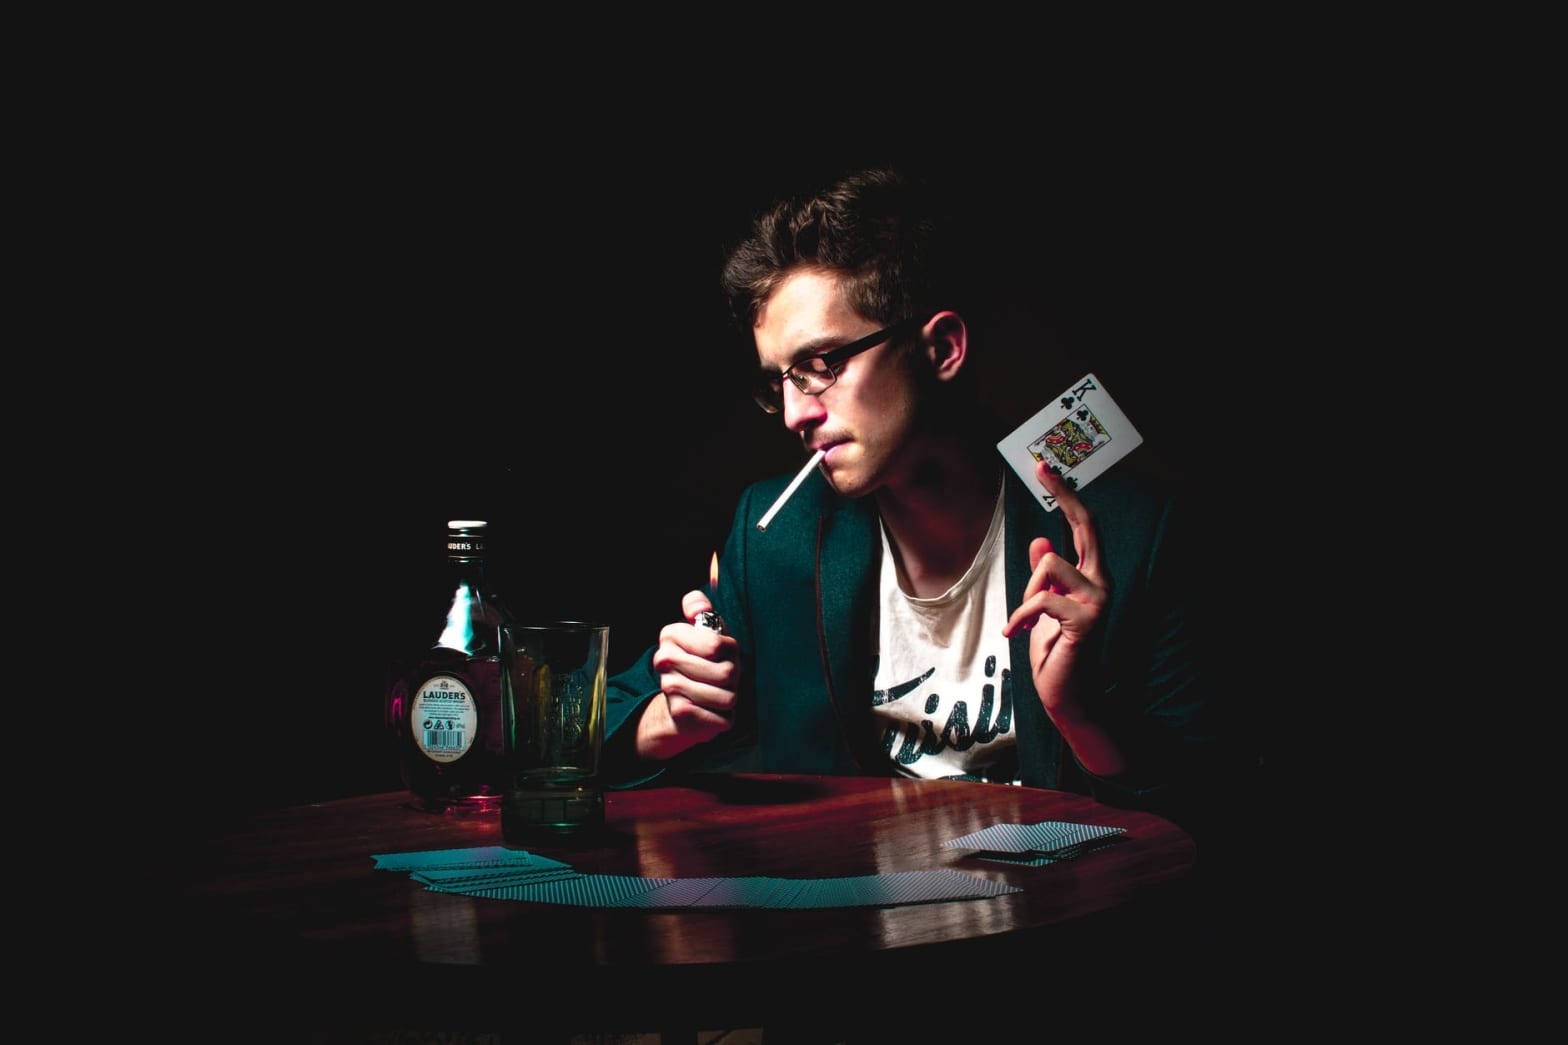 photo of man holding playing card